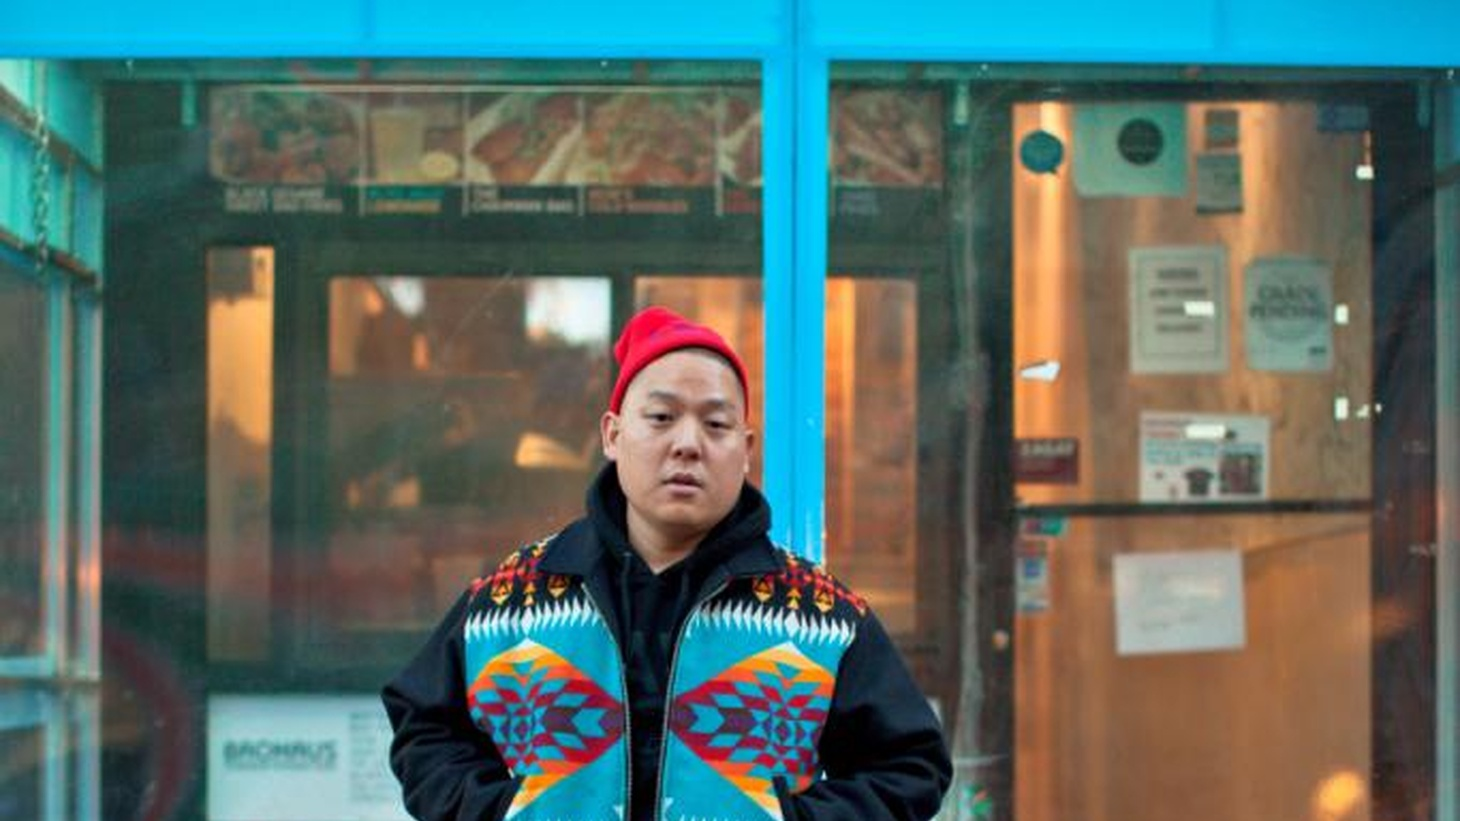 Chef Eddie Huang never shies away from the spotlight, and his Guest DJ set is a celebration of the different sides of his dynamic personality.